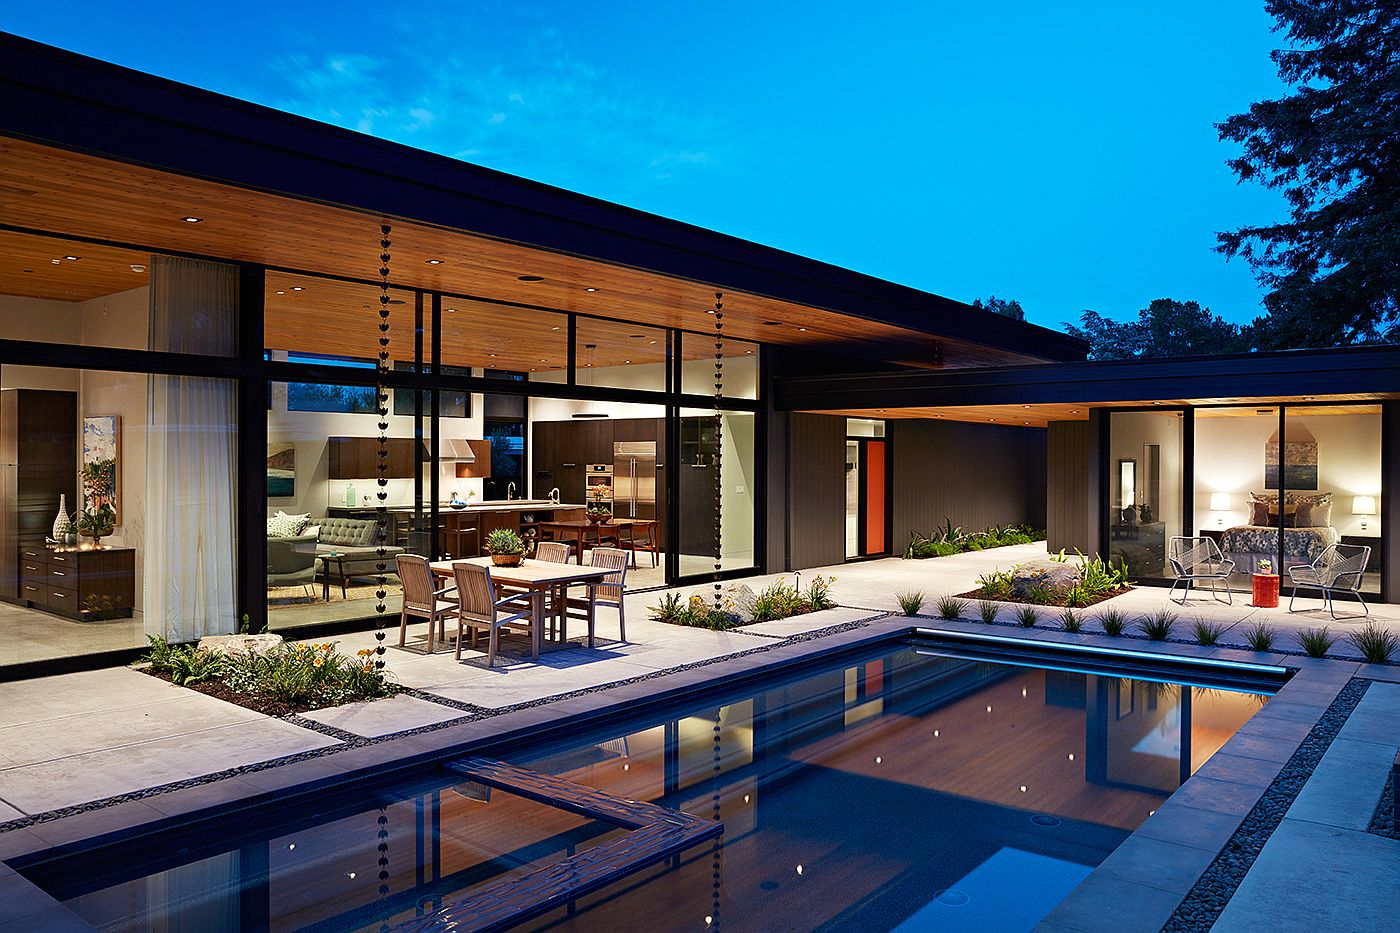 Large glass walls connect the interior with the rear yard and the pool